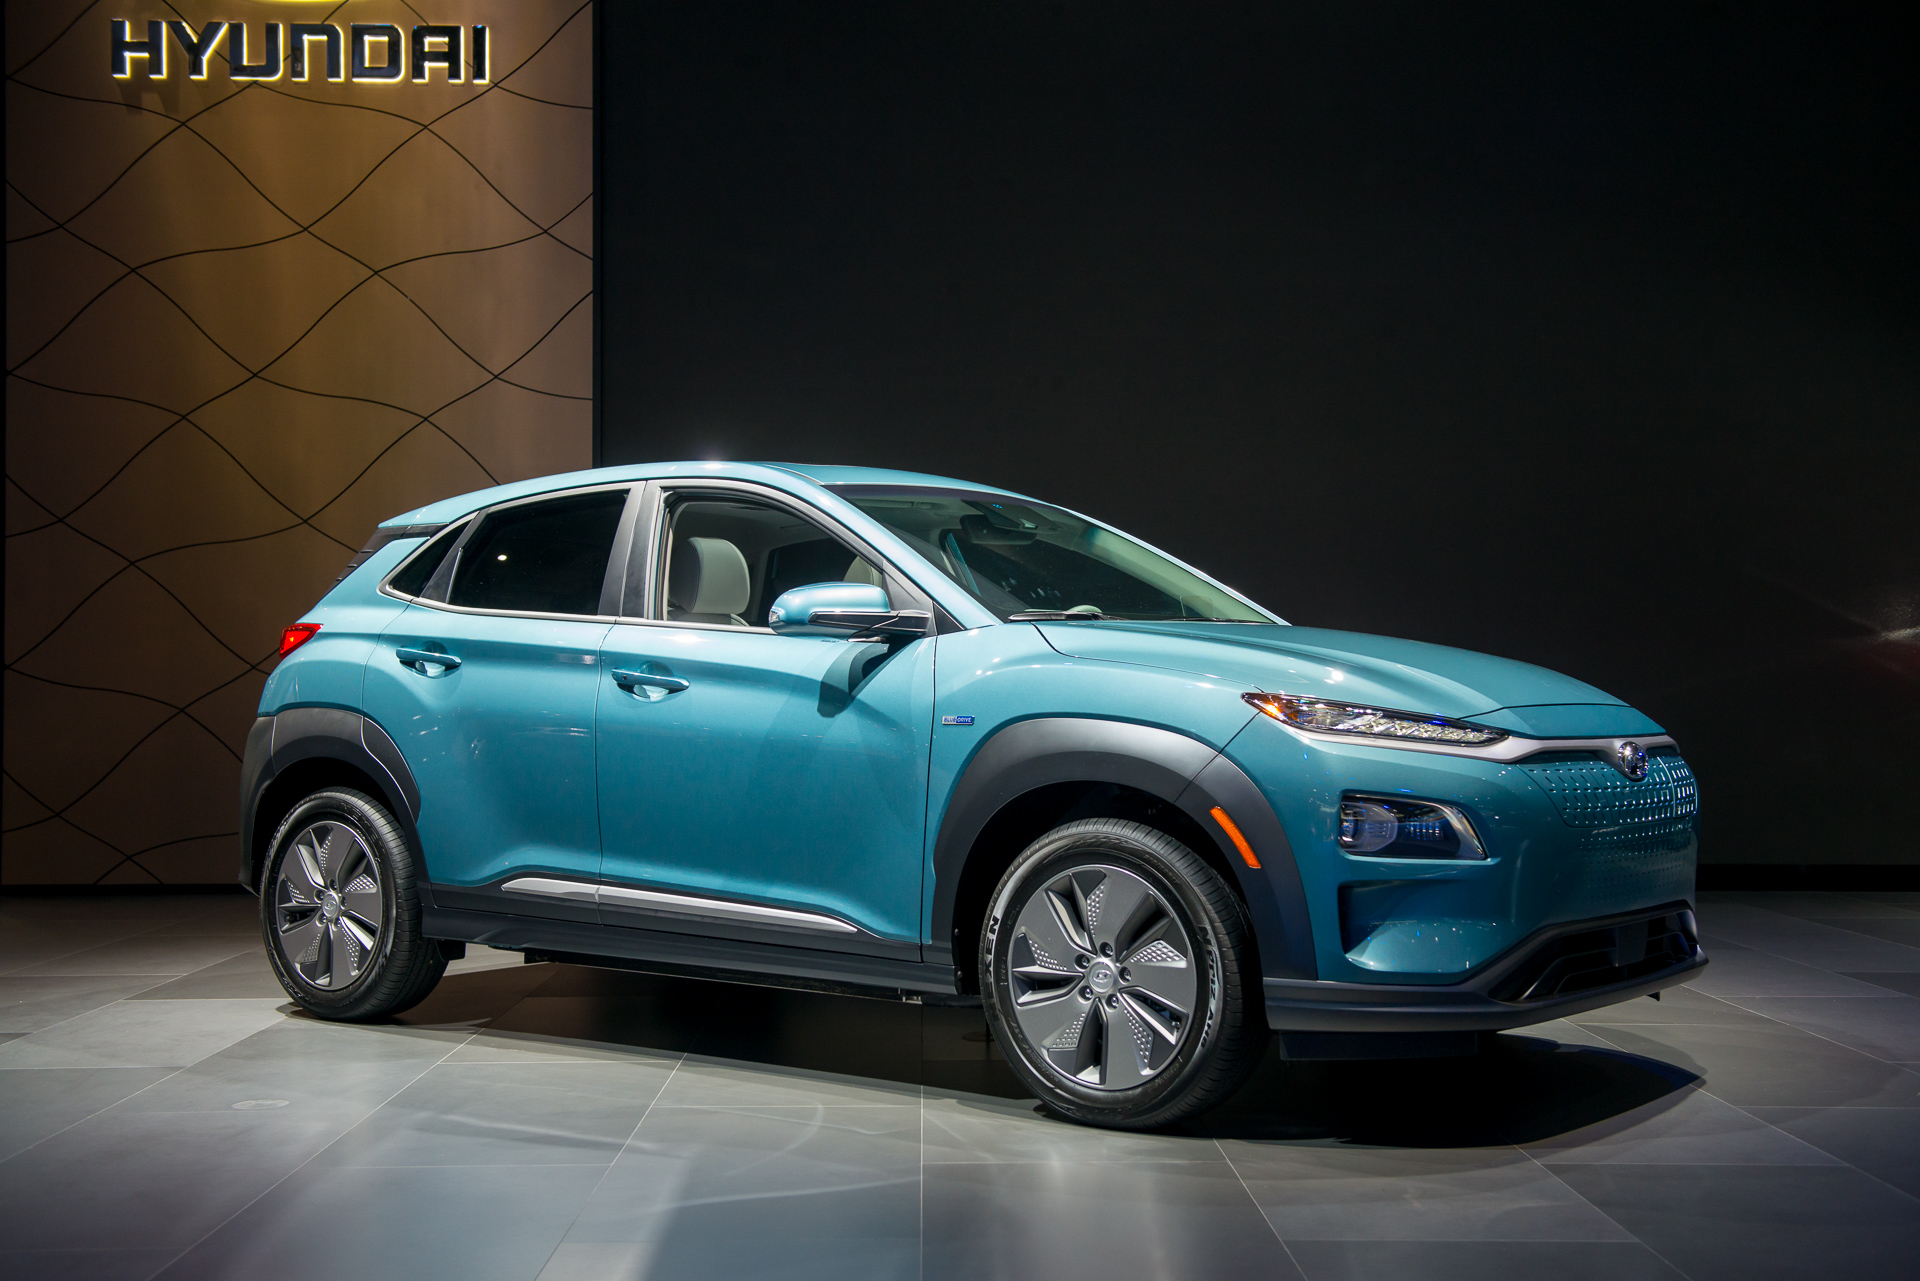 2019 Hyundai Kona Electric Us Debut 250 Miles Of Range From Small Hatchback